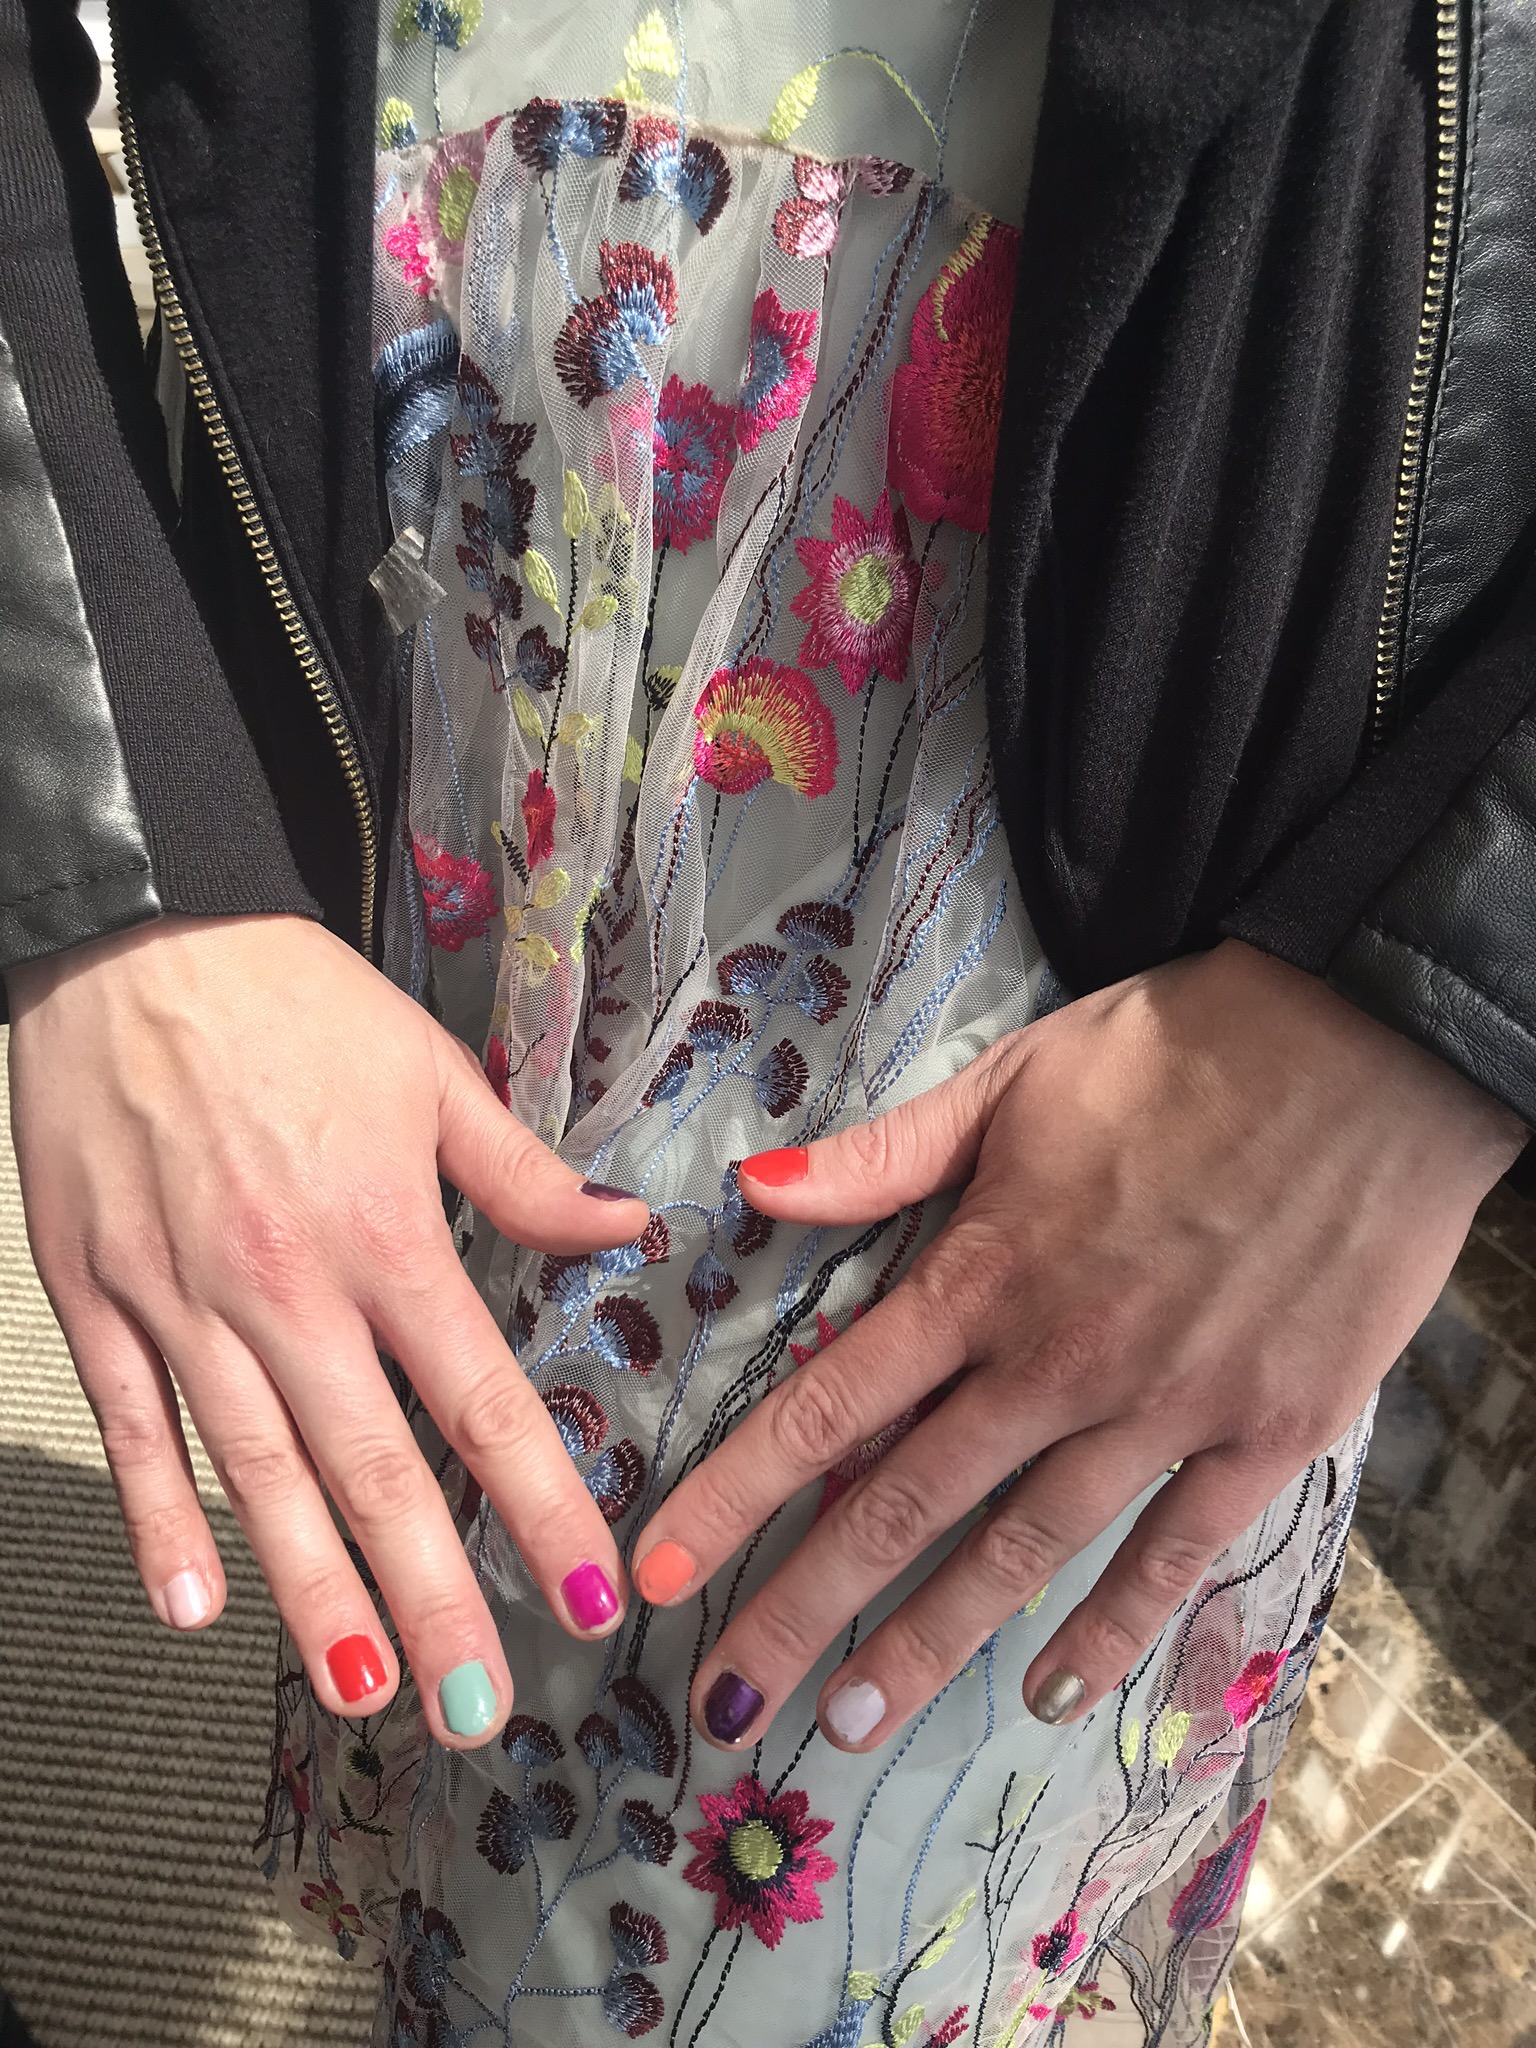 Steelyard Nail Polish Trail - Seven markets, 15,000 bottles, and a lot of colorful nails!